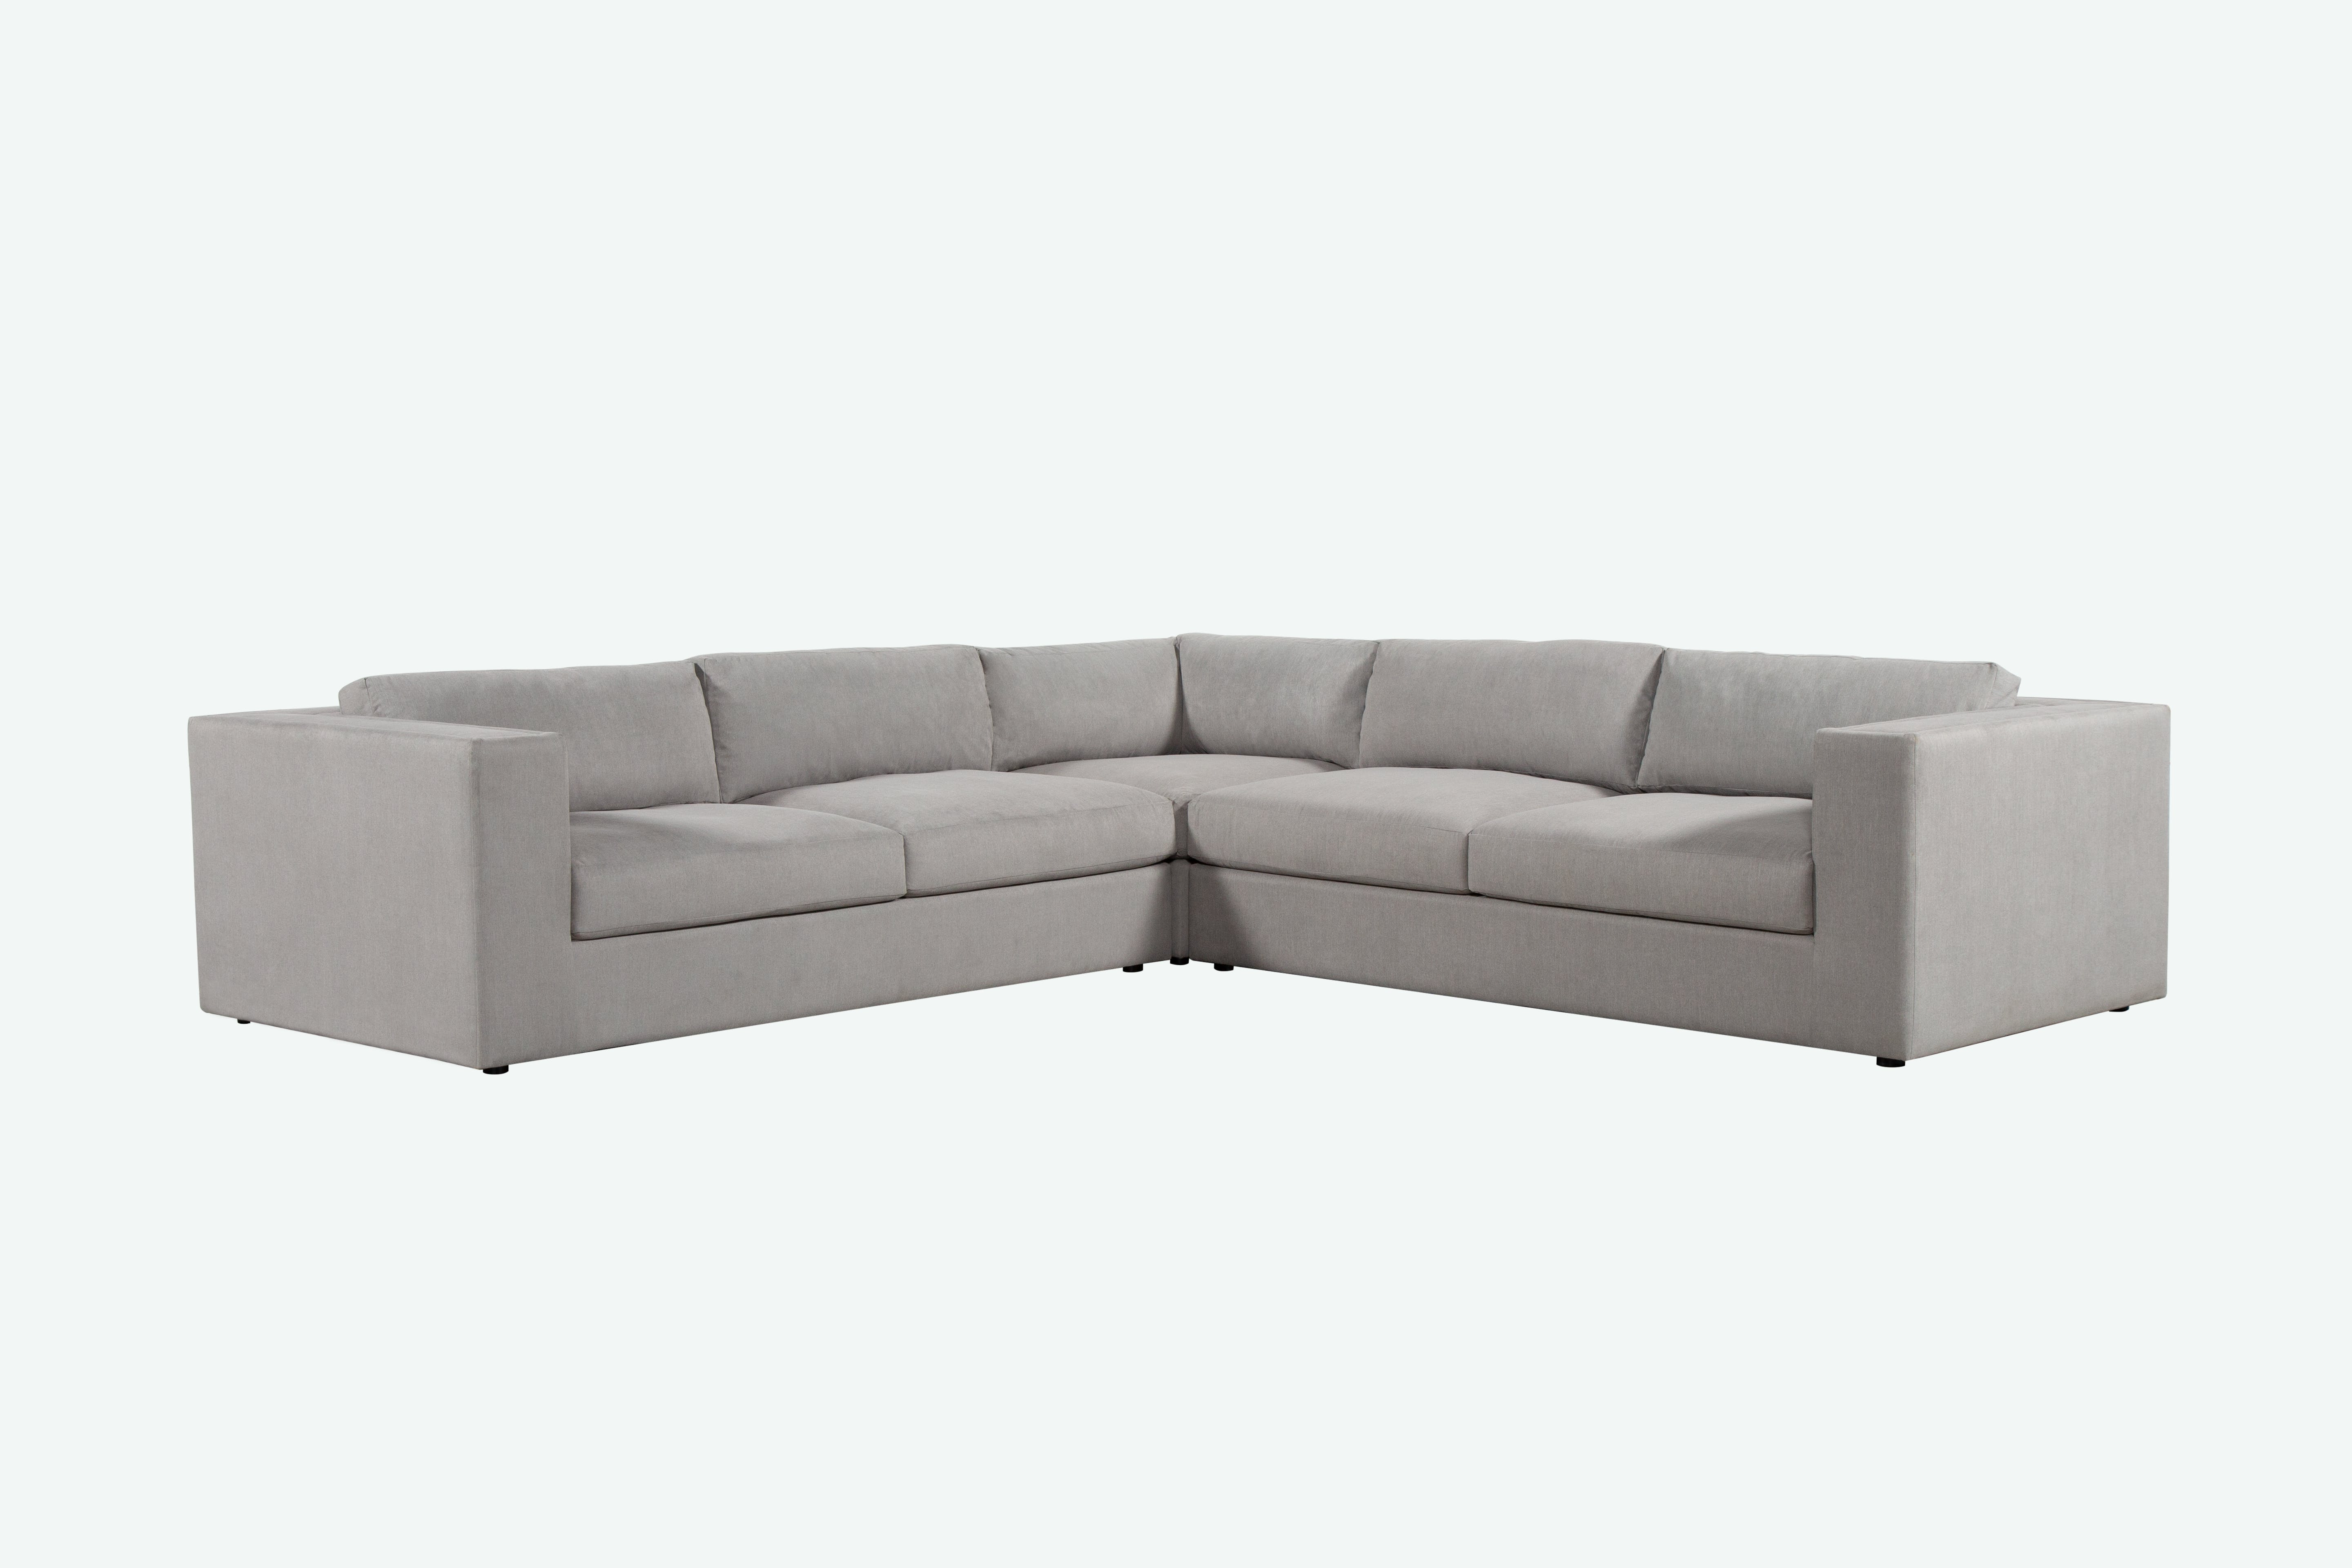 Trendy Nate Berkus Just Launched A Home Collection With Hubby Jeremiah Regarding Whitley 3 Piece Sectionals By Nate Berkus And Jeremiah Brent (View 3 of 20)